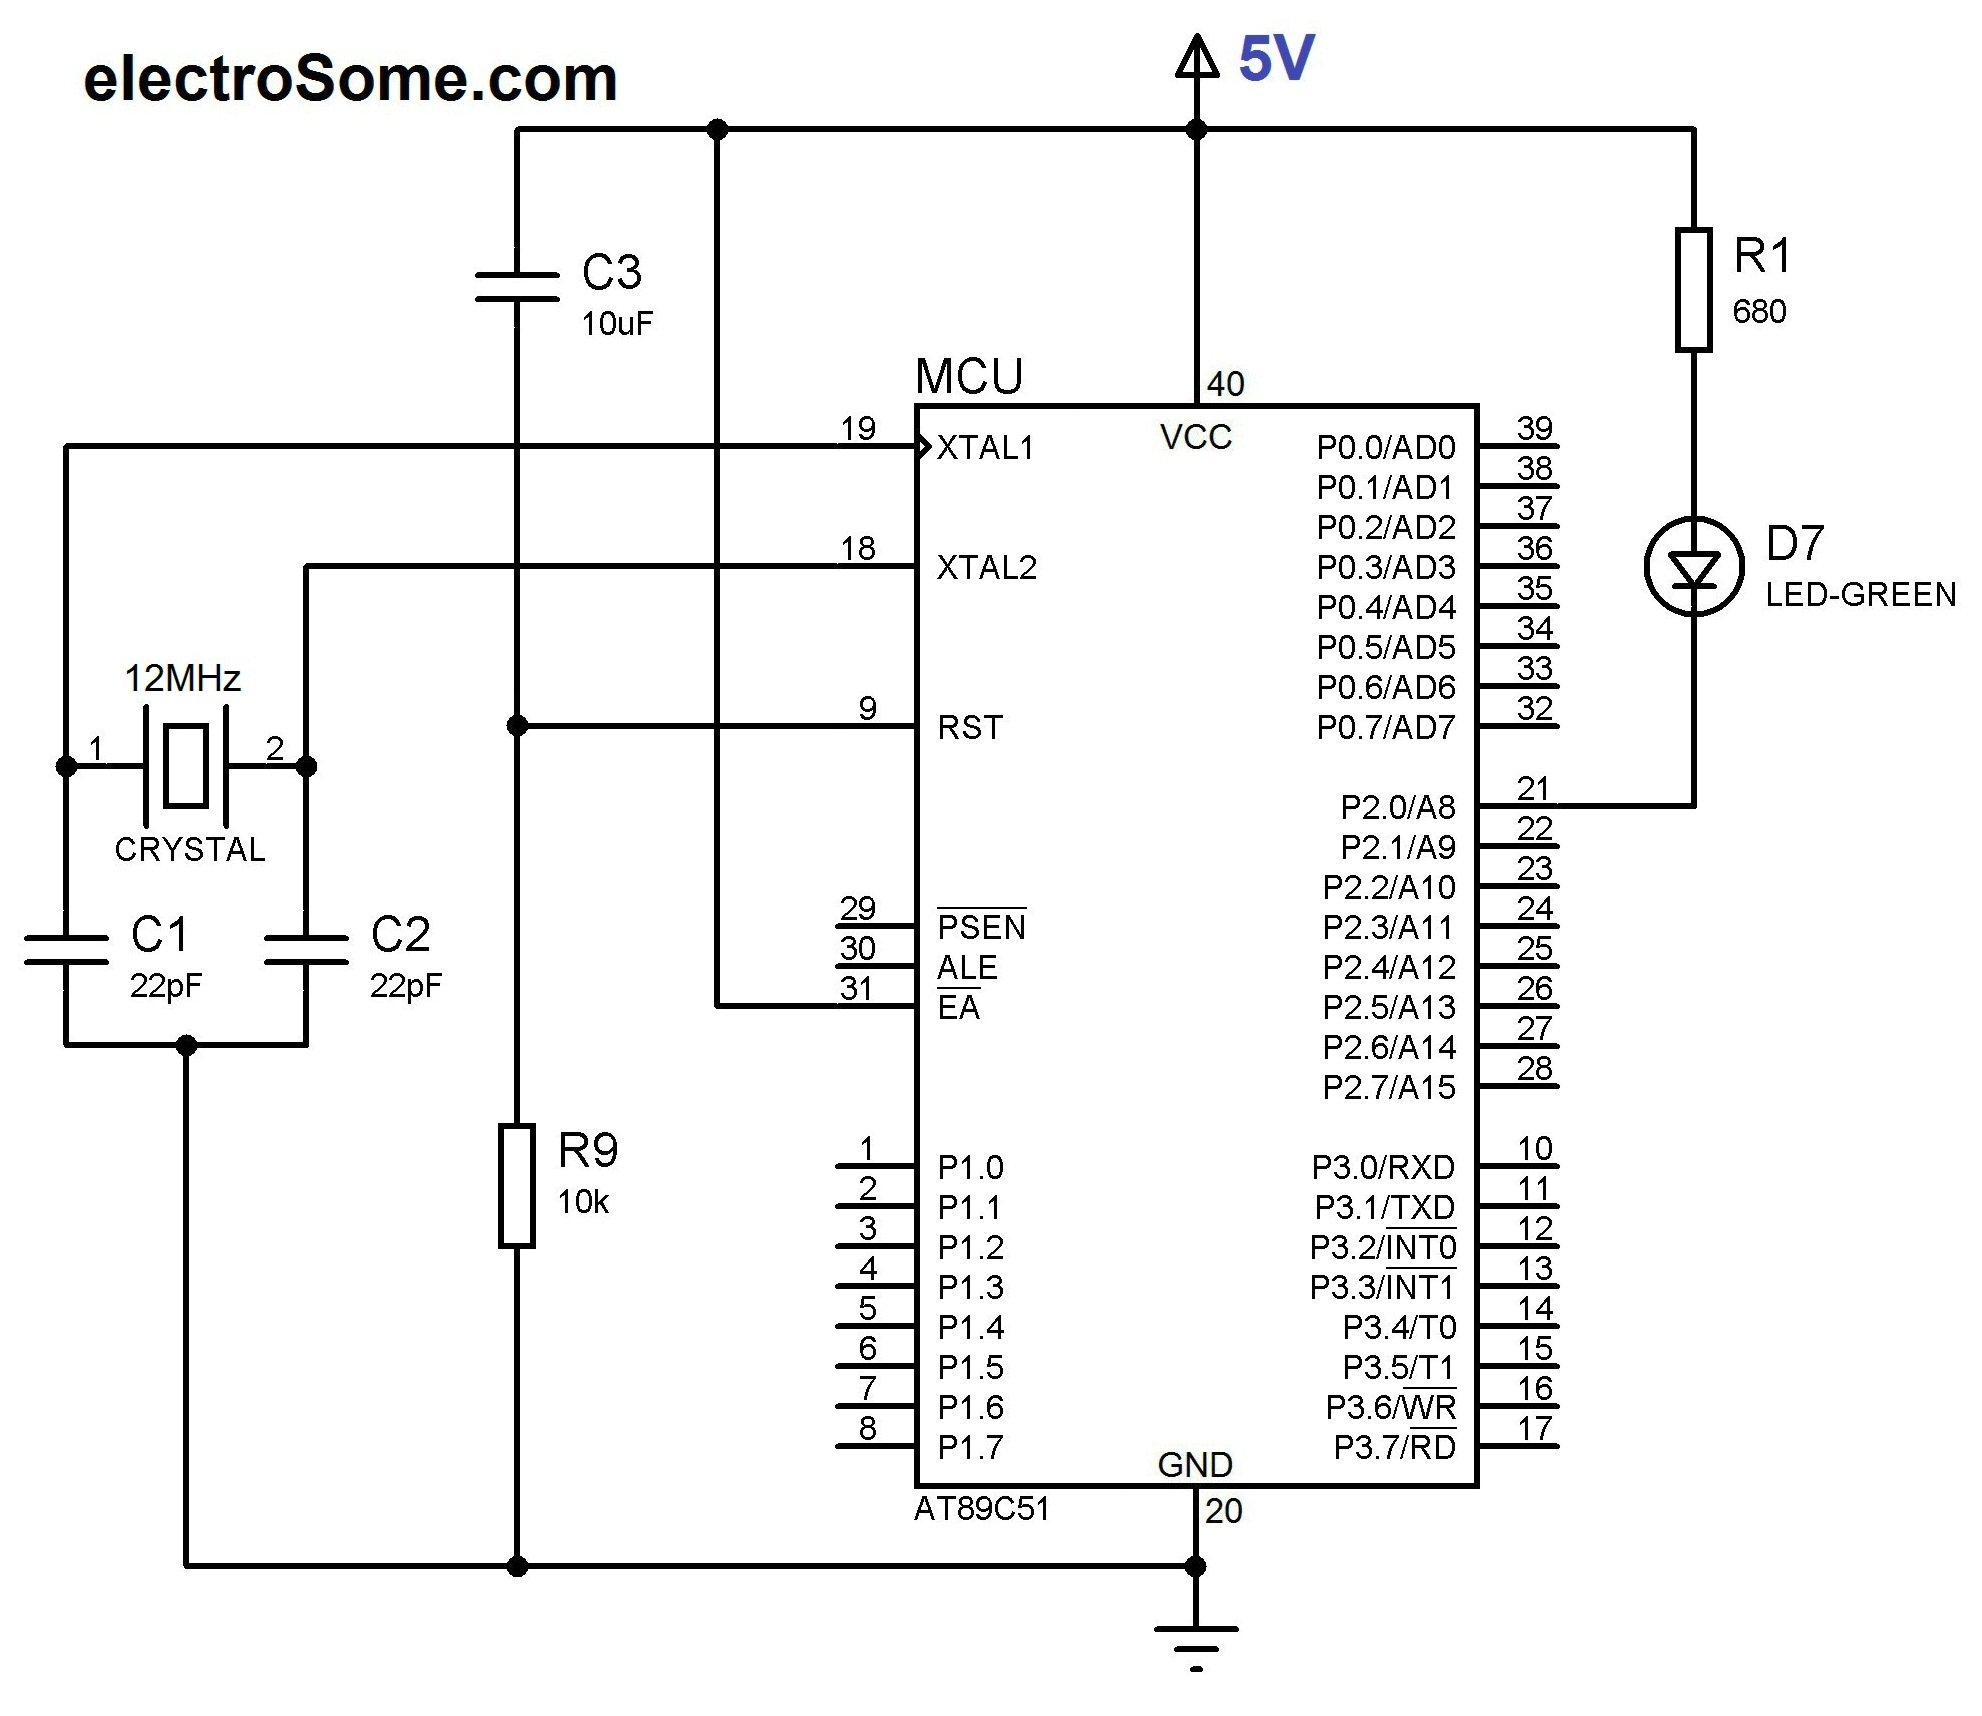 led blinking using 8051 microcontroller and keil c at89c51 rh electrosome com 8051 microcontroller circuit diagram 8051 programmer circuit diagram